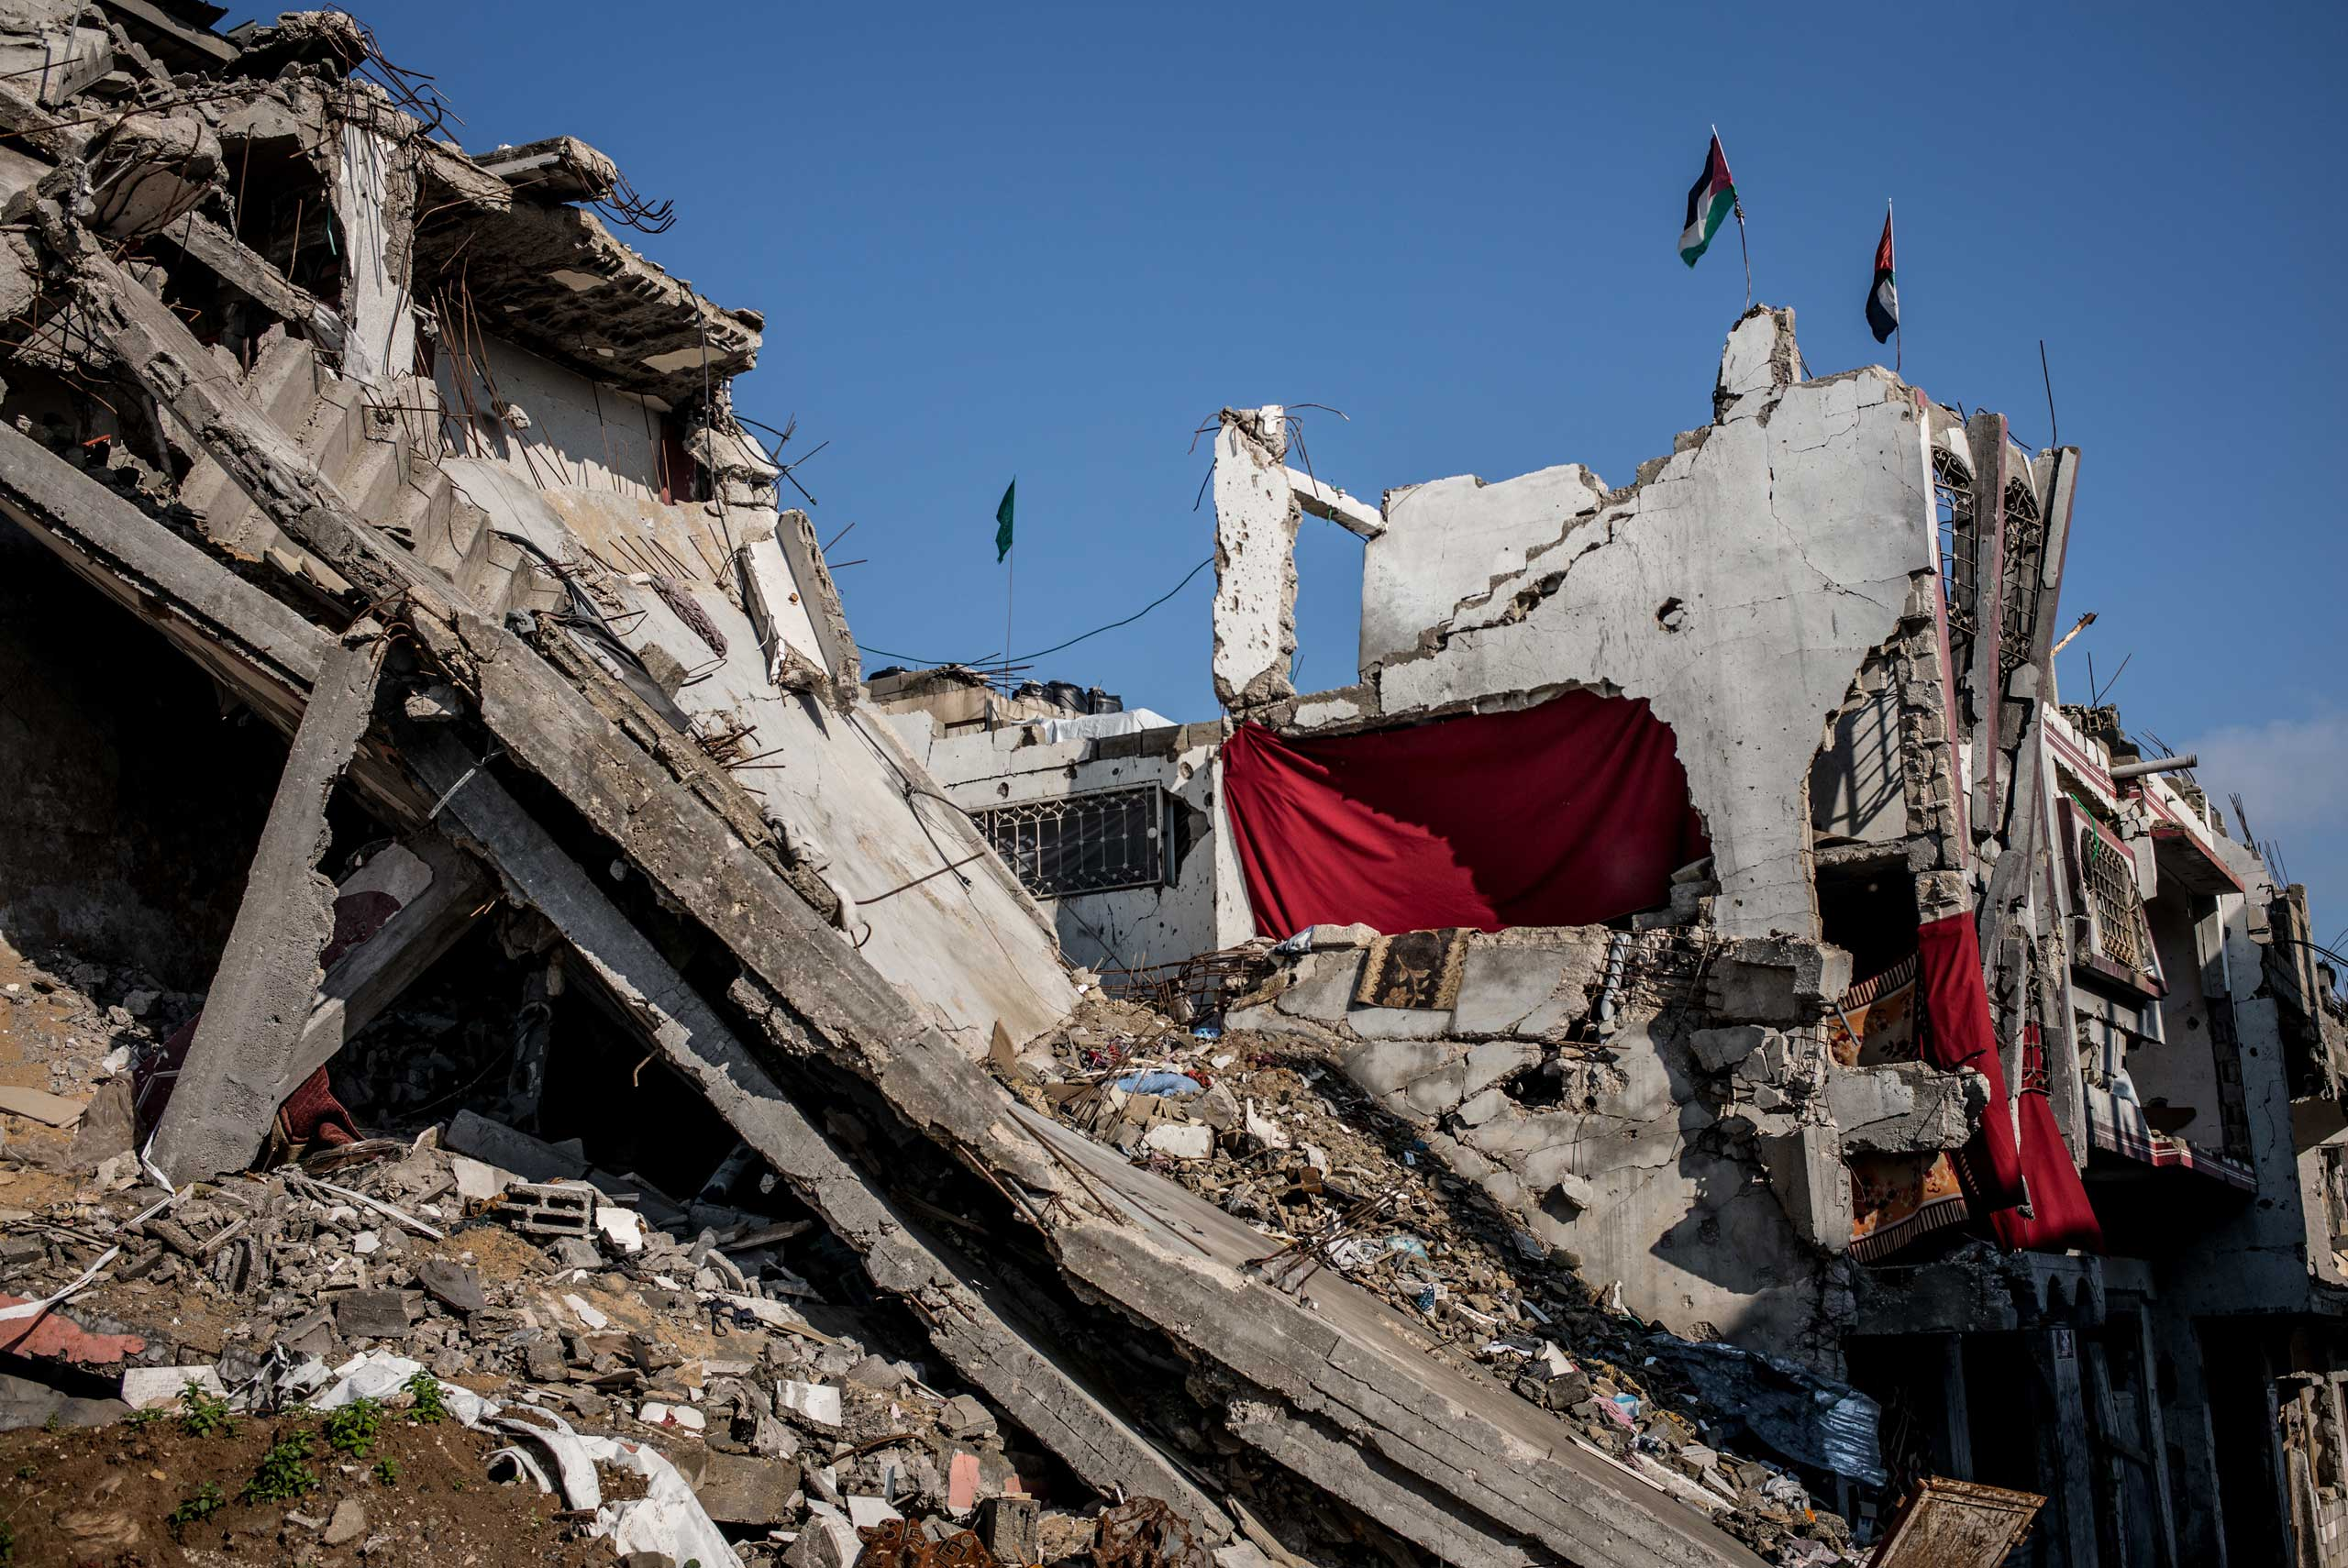 In a partially destroyed building in Shejaiya, Gaza, red blankets are used to replace the missing walls. Two Palestinian flags and a Hamas one stand on the top of the building. The Gaza Strip, December 2014.